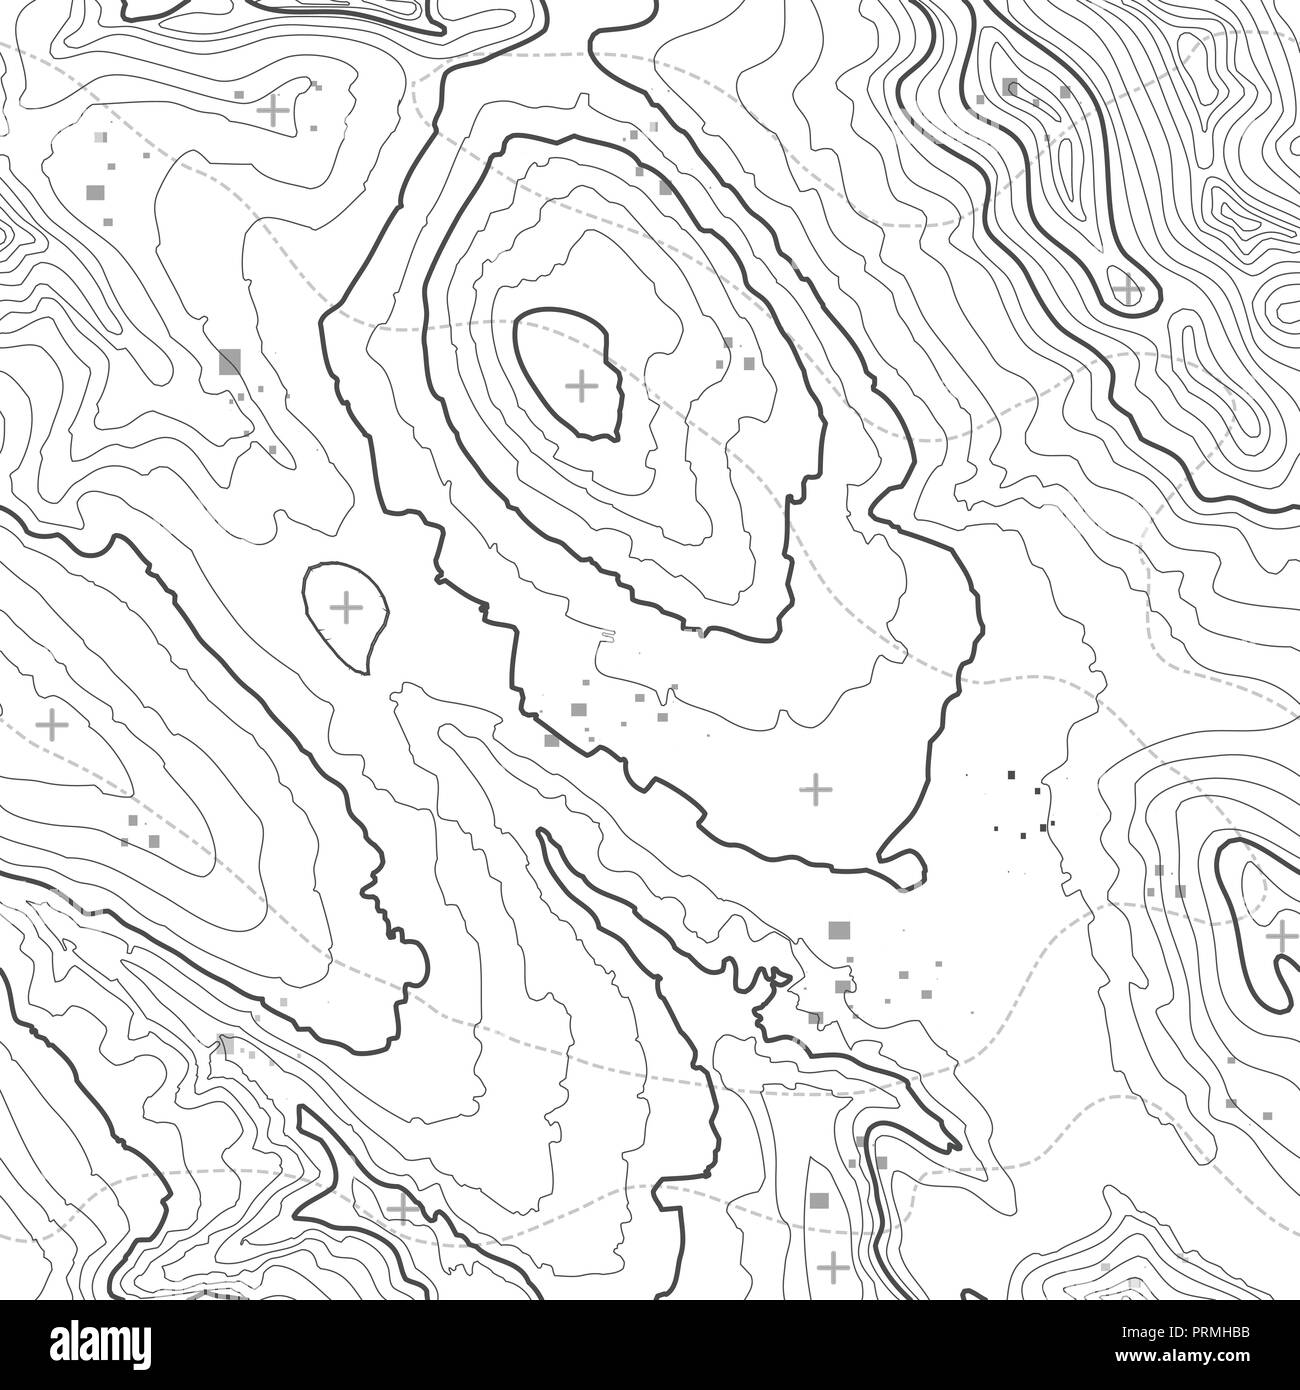 29 Contour Lines Topographic Map